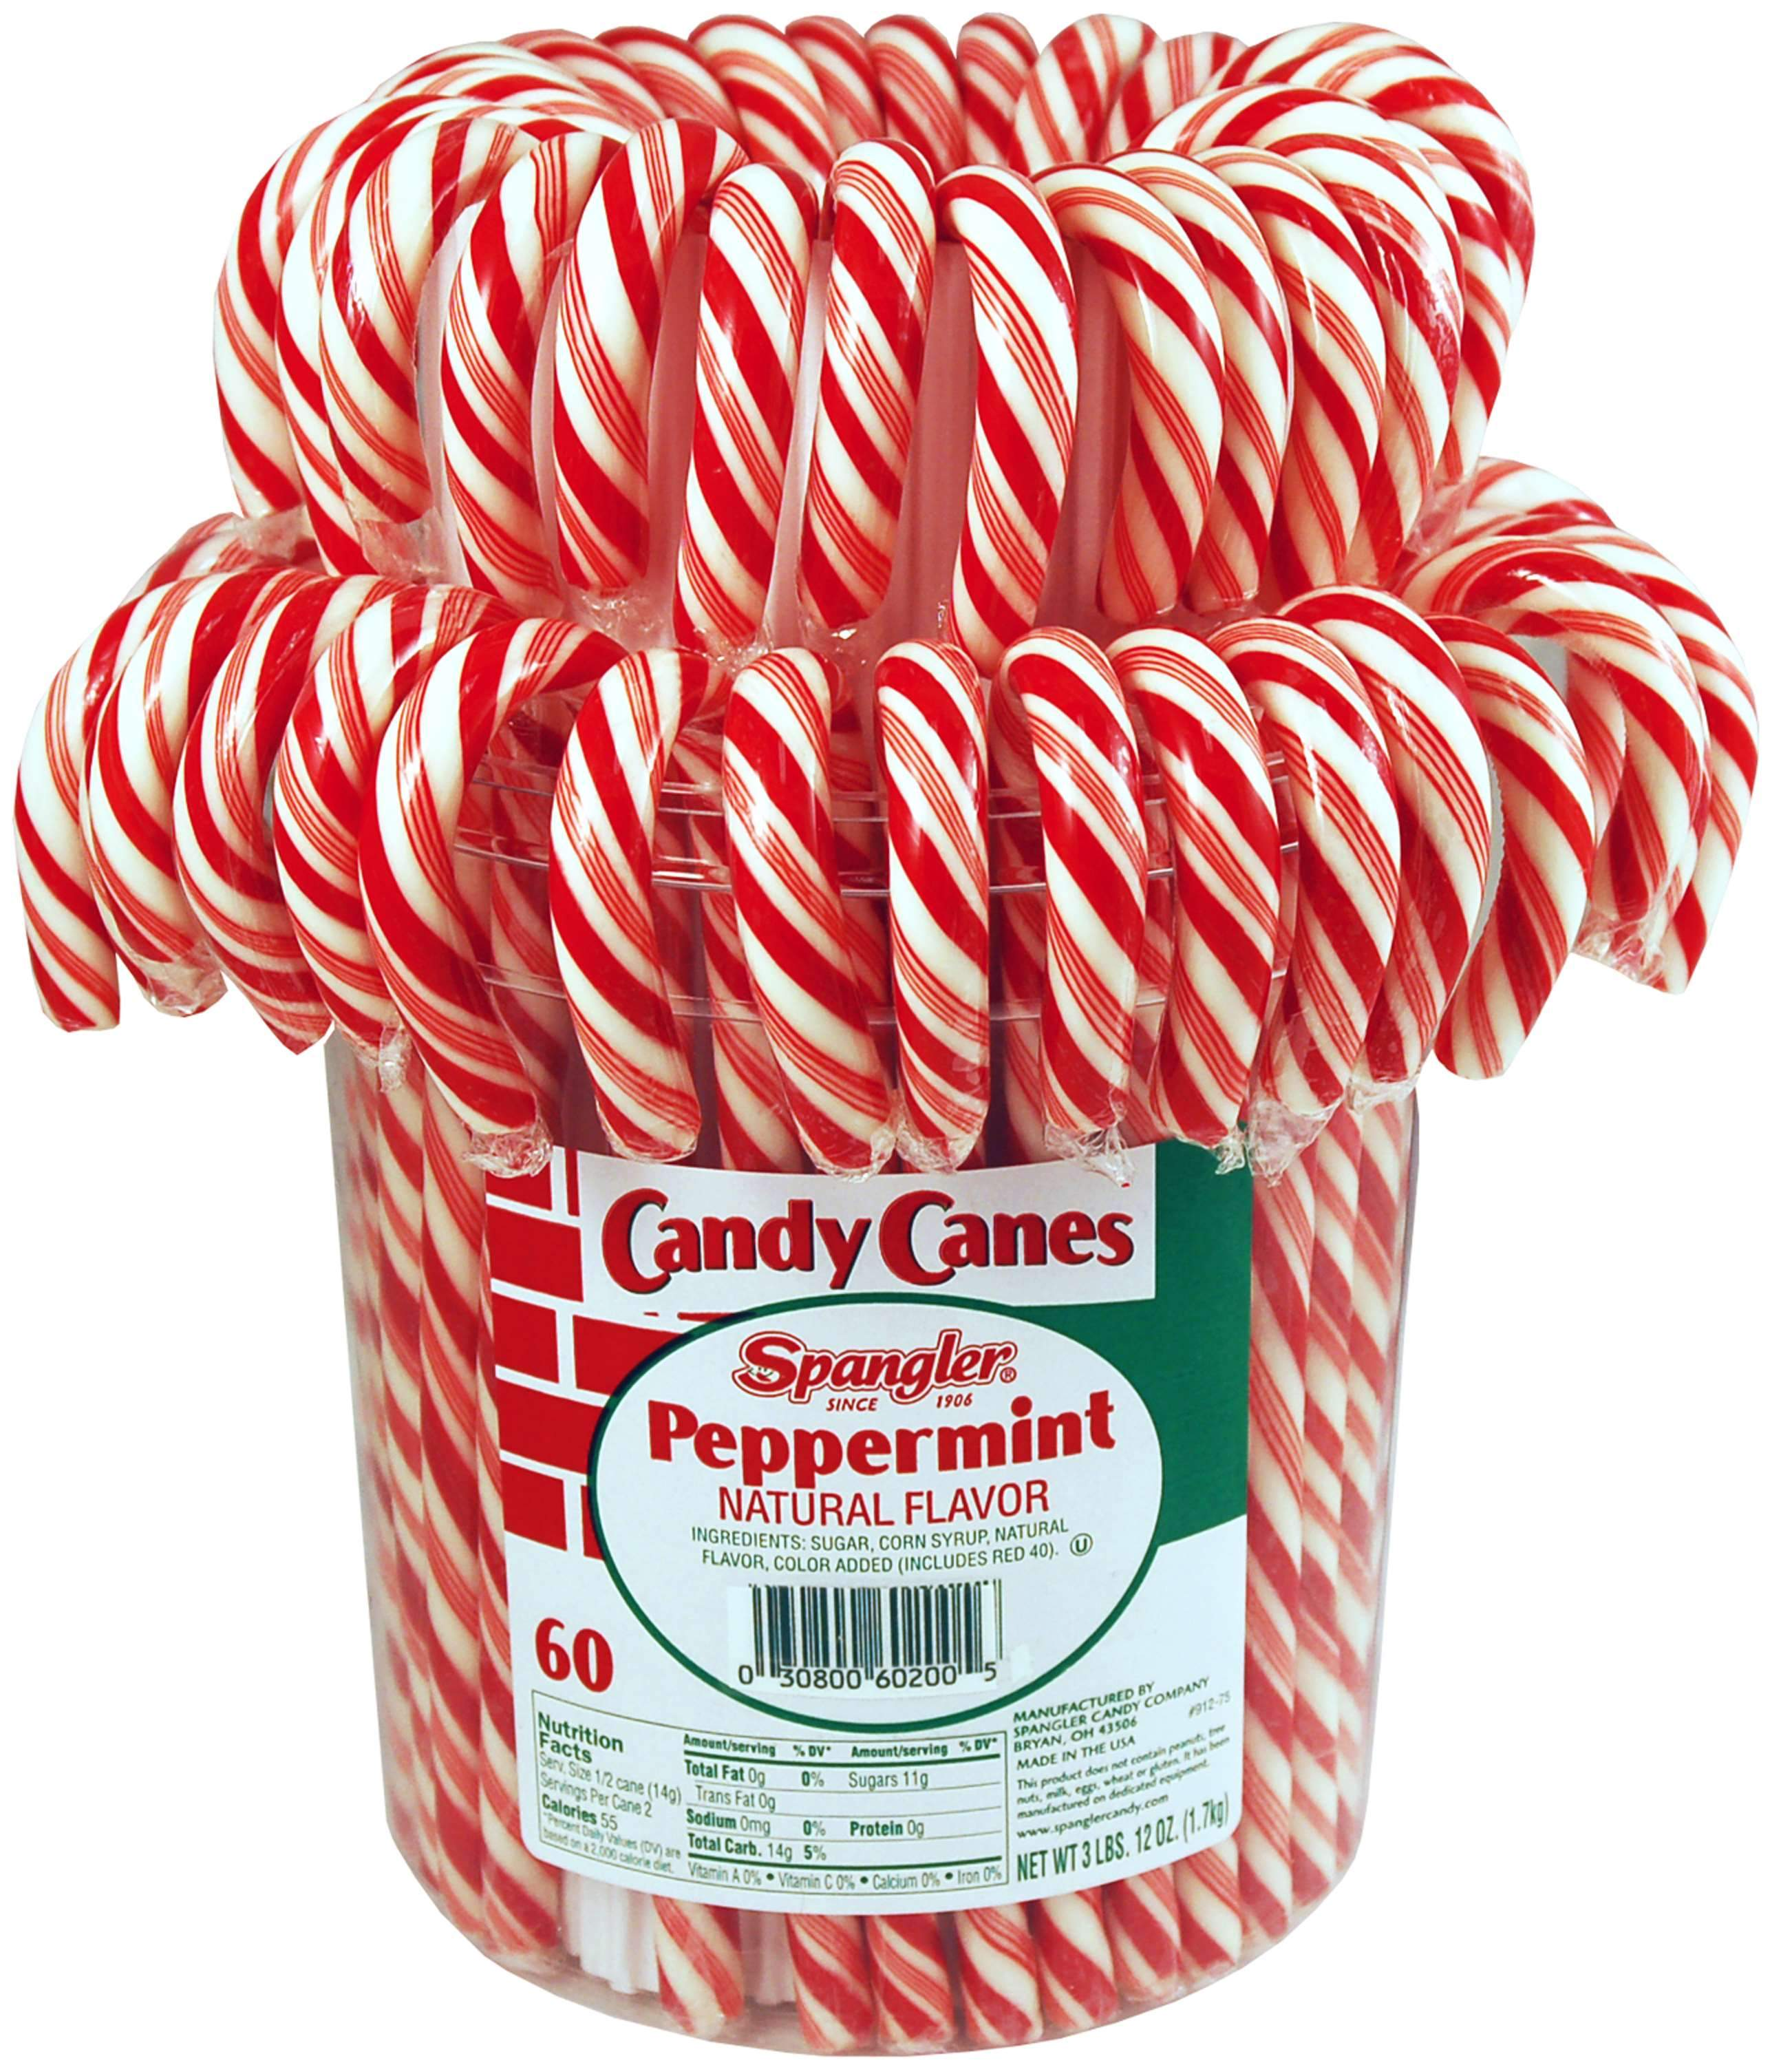 Spangler Candy Canes Spangler Peppermint 60 Ct-60 Ounce